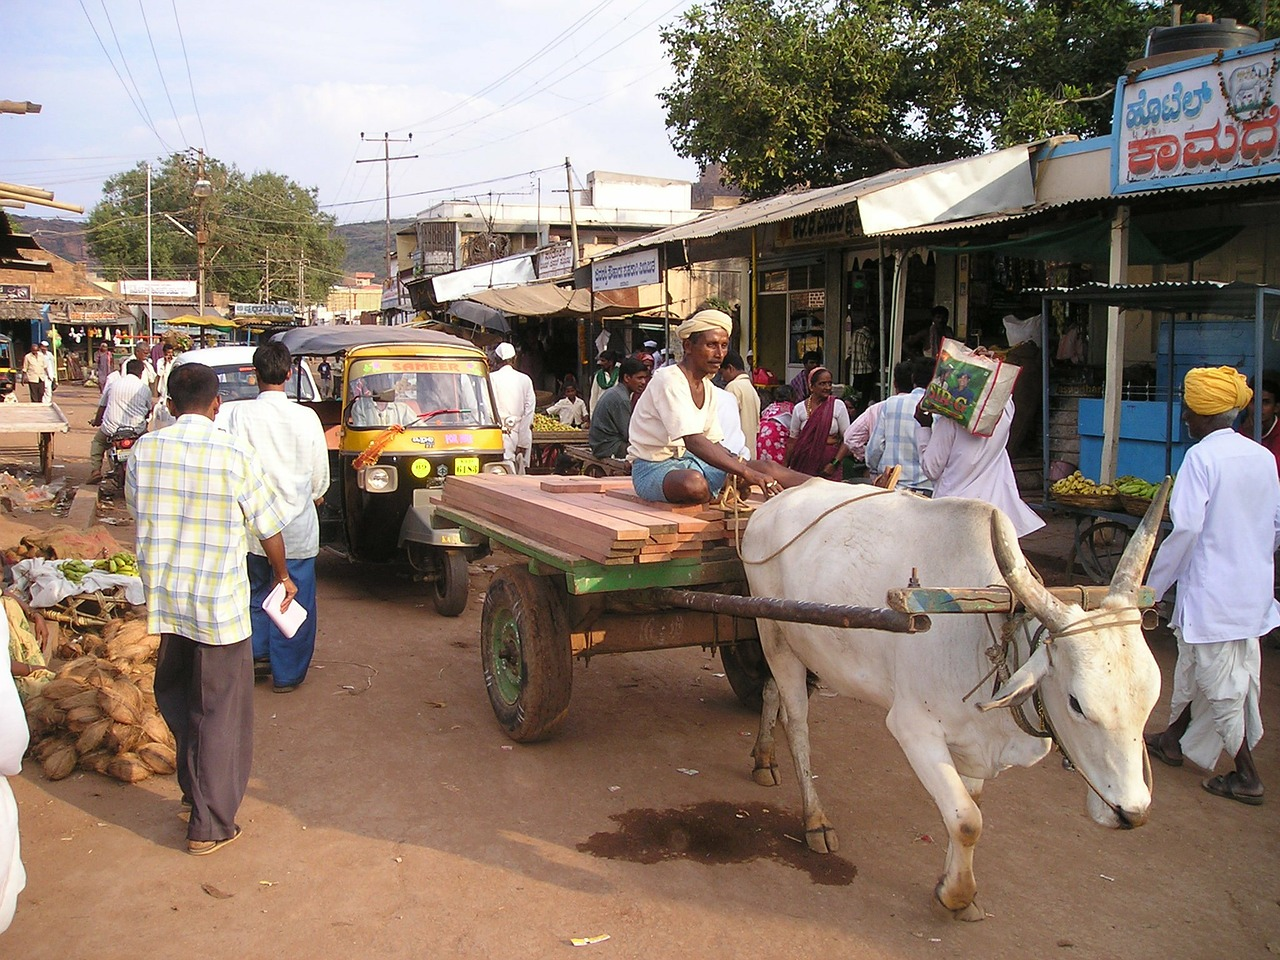 india oxcart oxen free photo